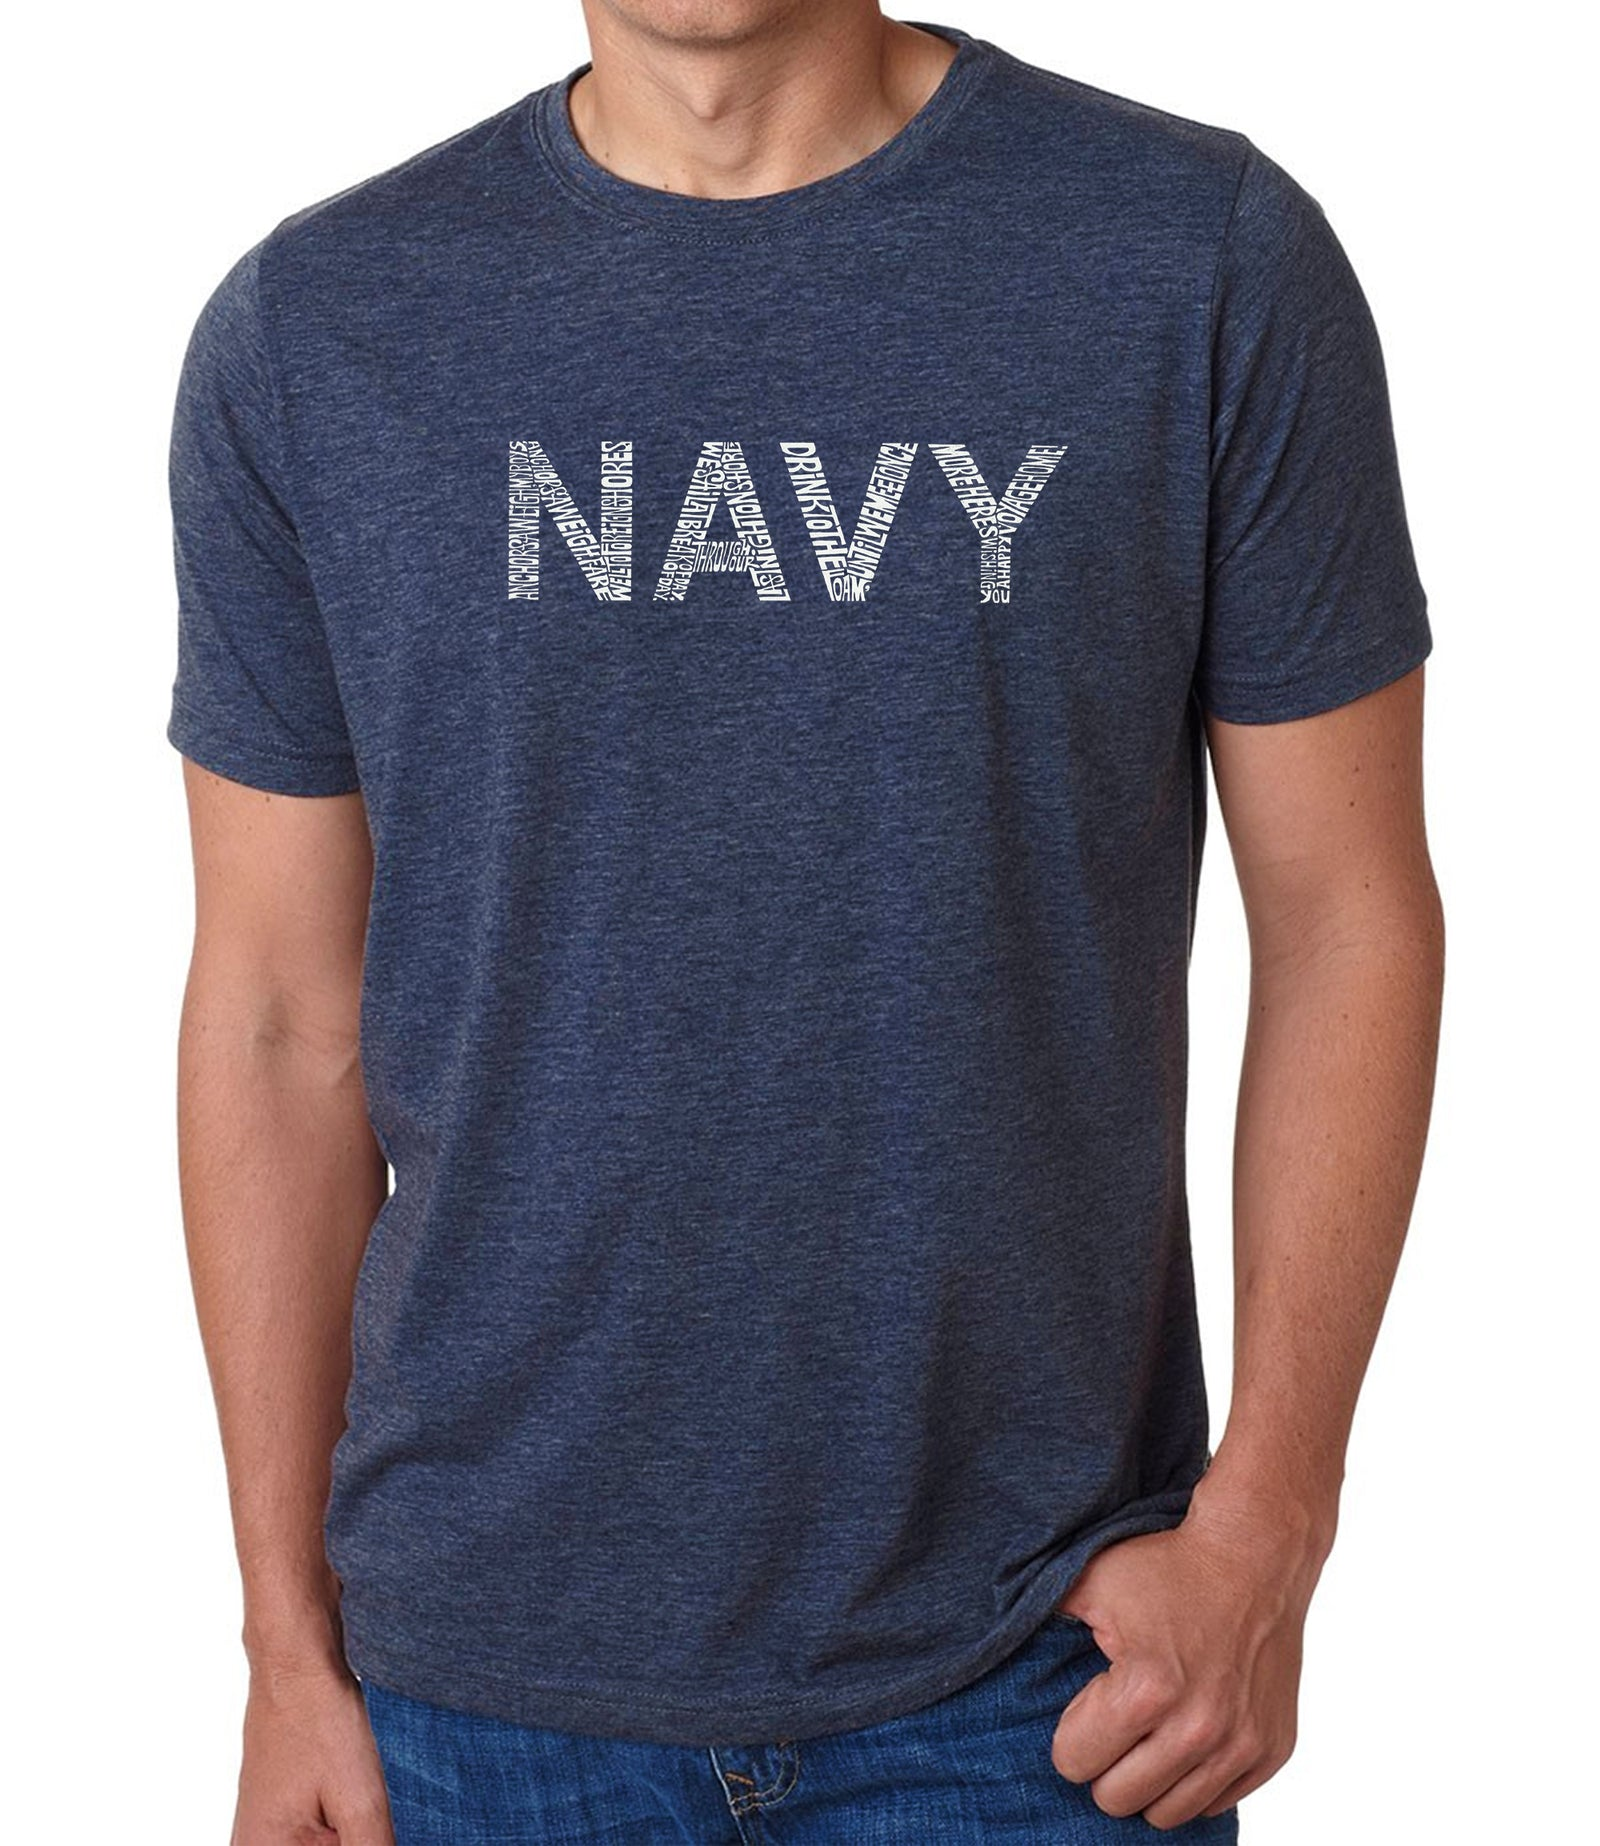 Men's Premium Blend Word Art T-shirt - LYRICS TO ANCHORS AWEIGH